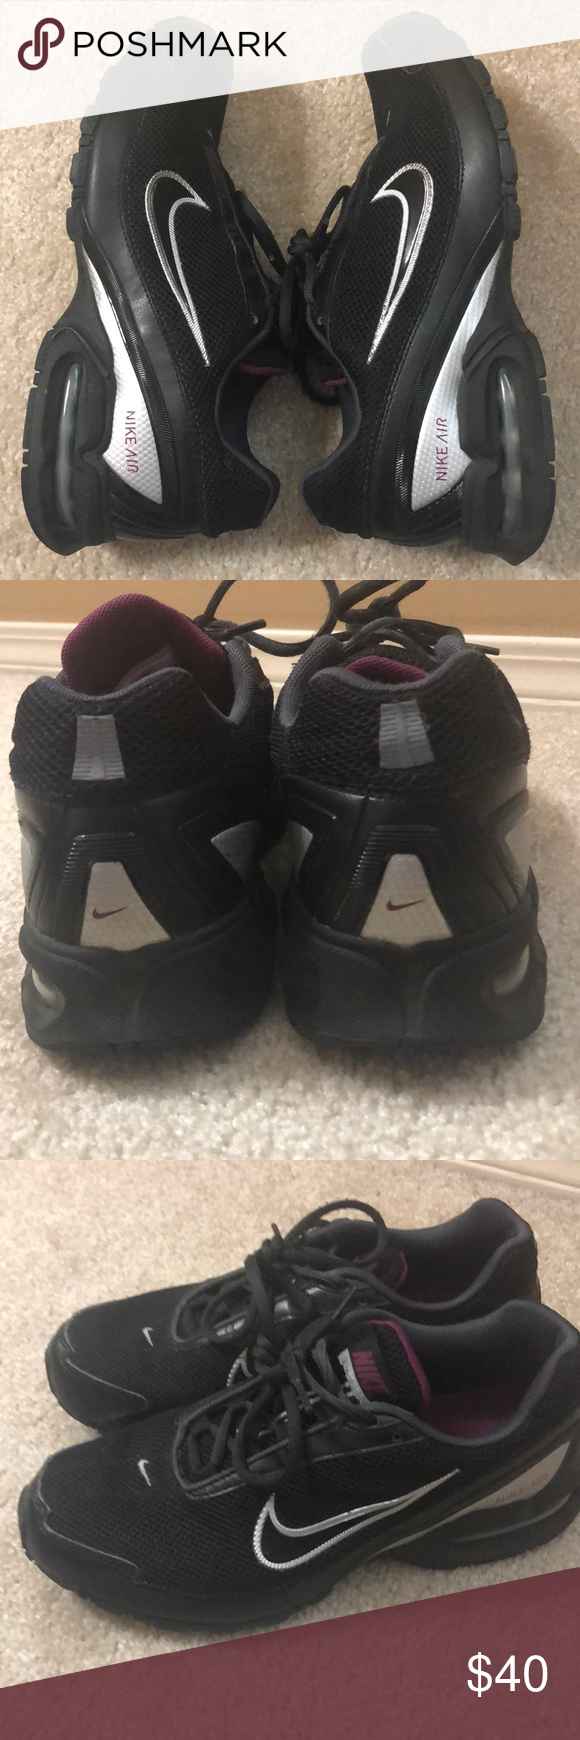 1770b07815d44 Nike Air Max Torch 3 Women s 8.5 Great used condition! Black Purple Silver  Nike Shoes Athletic Shoes